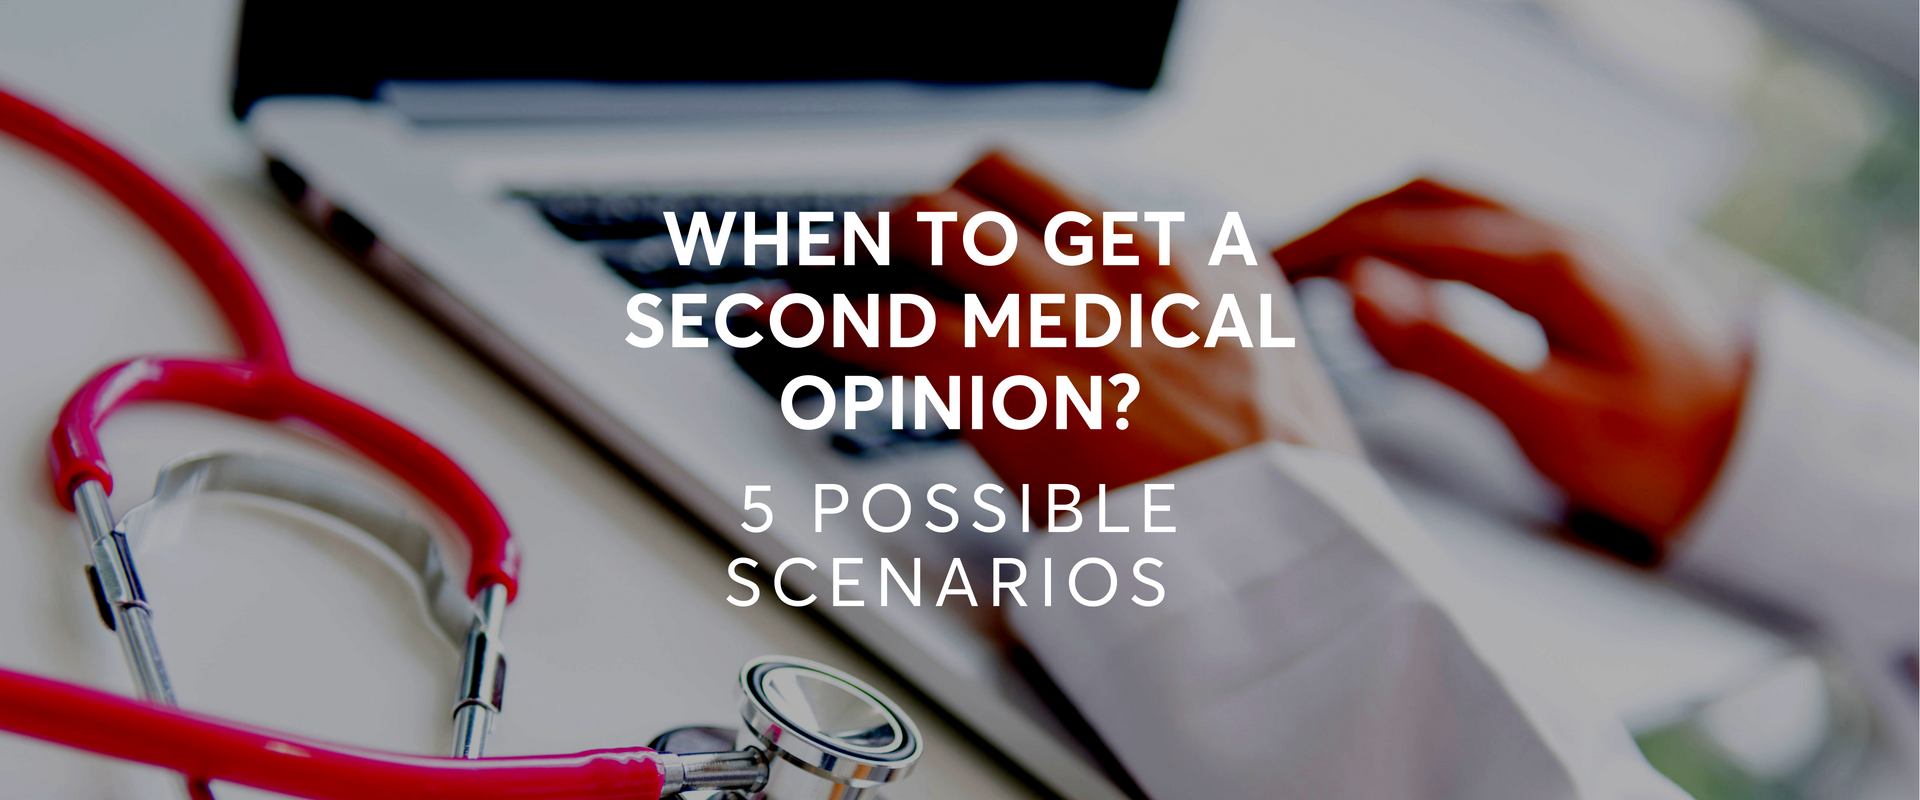 When to get a second medical opinion? 5 possible scenarios (Part 1)